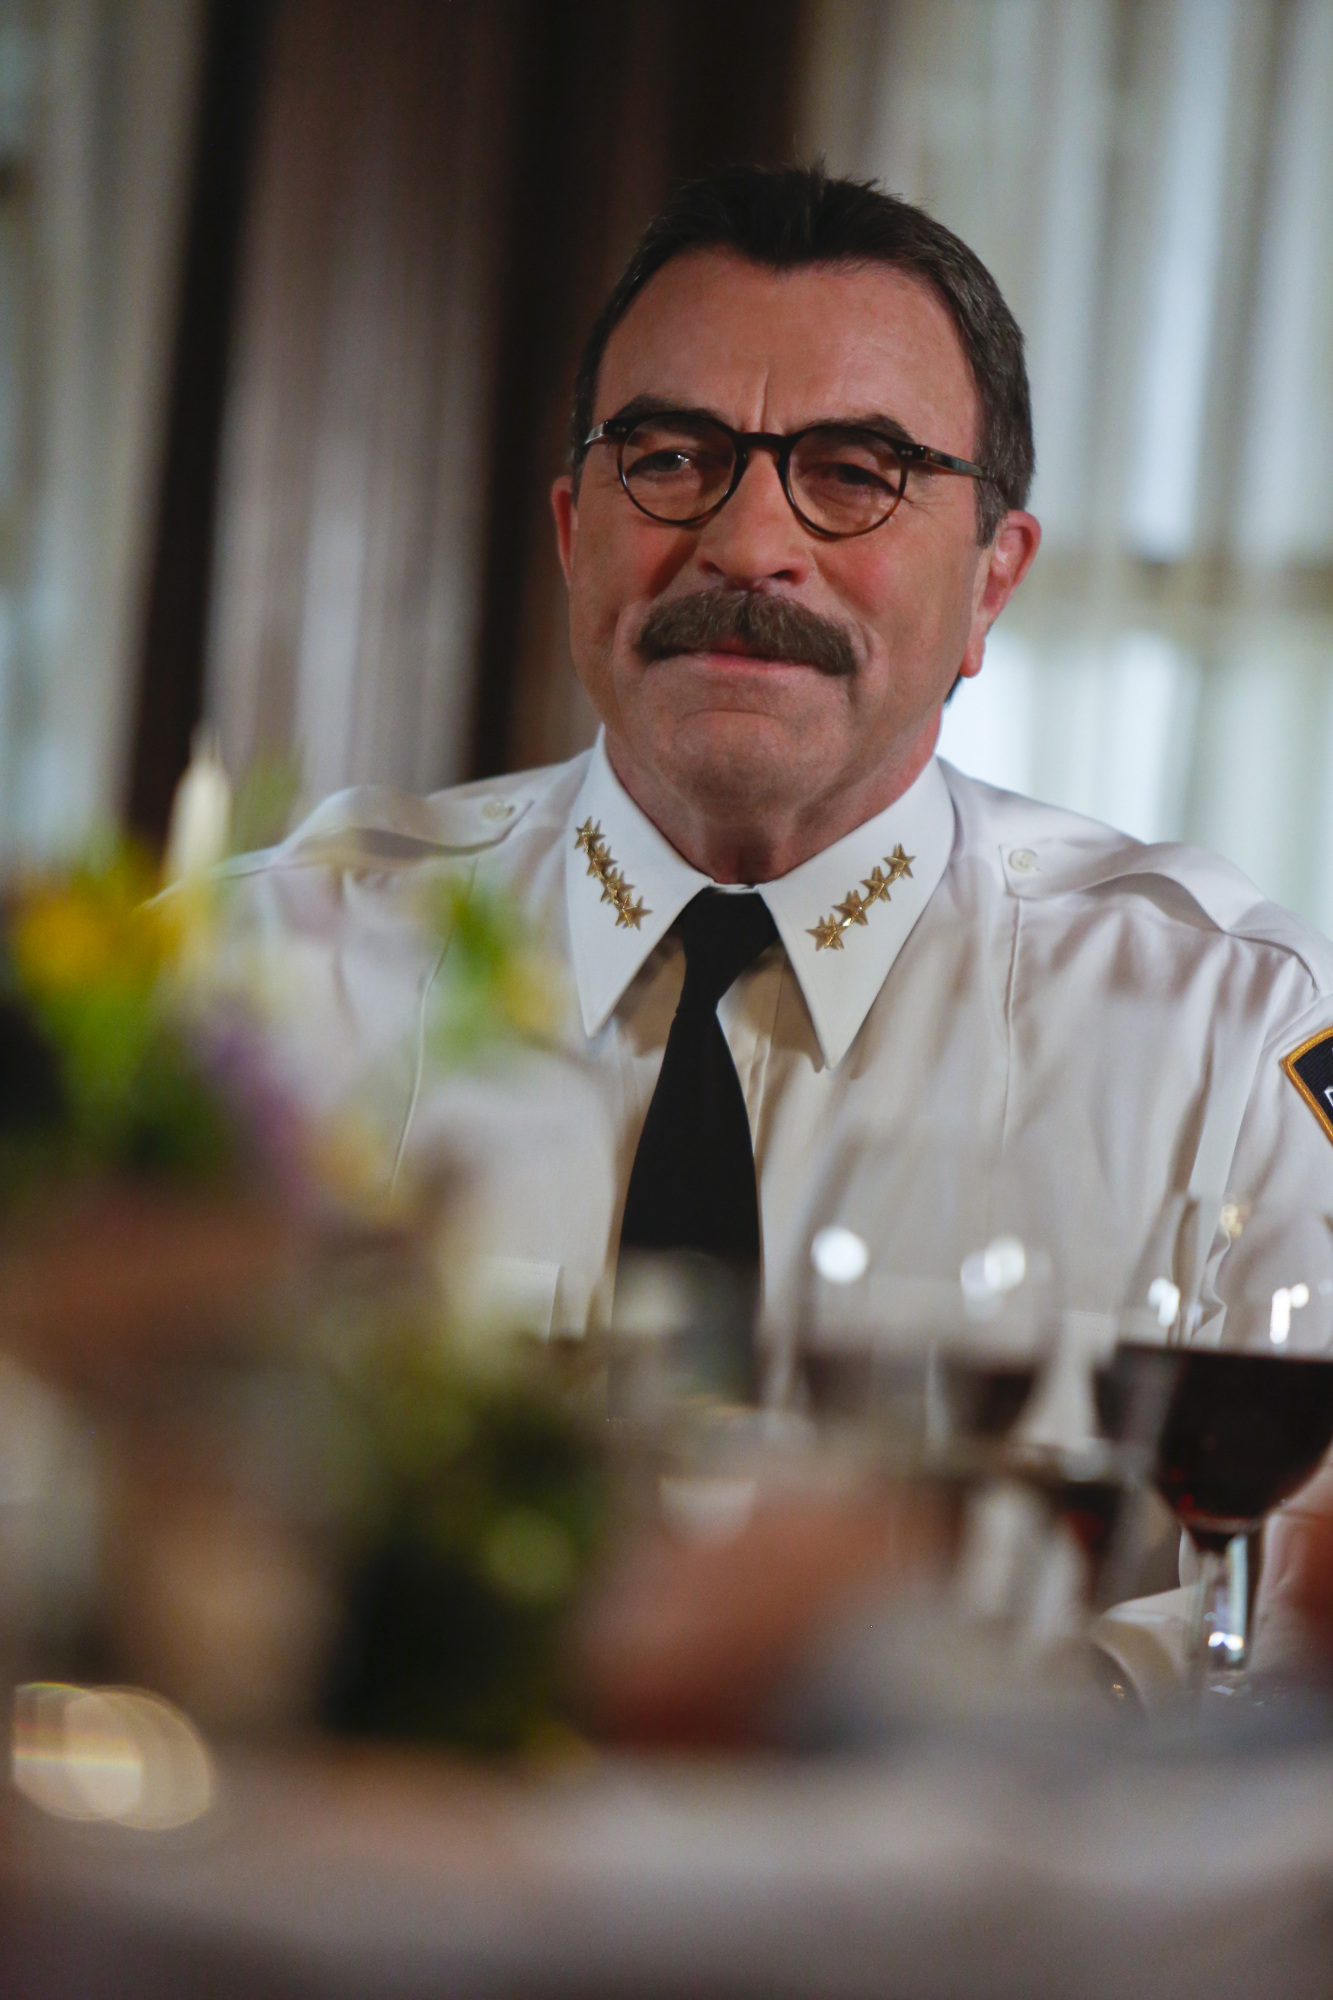 19. Tom Selleck guest-starred in nine episodes of